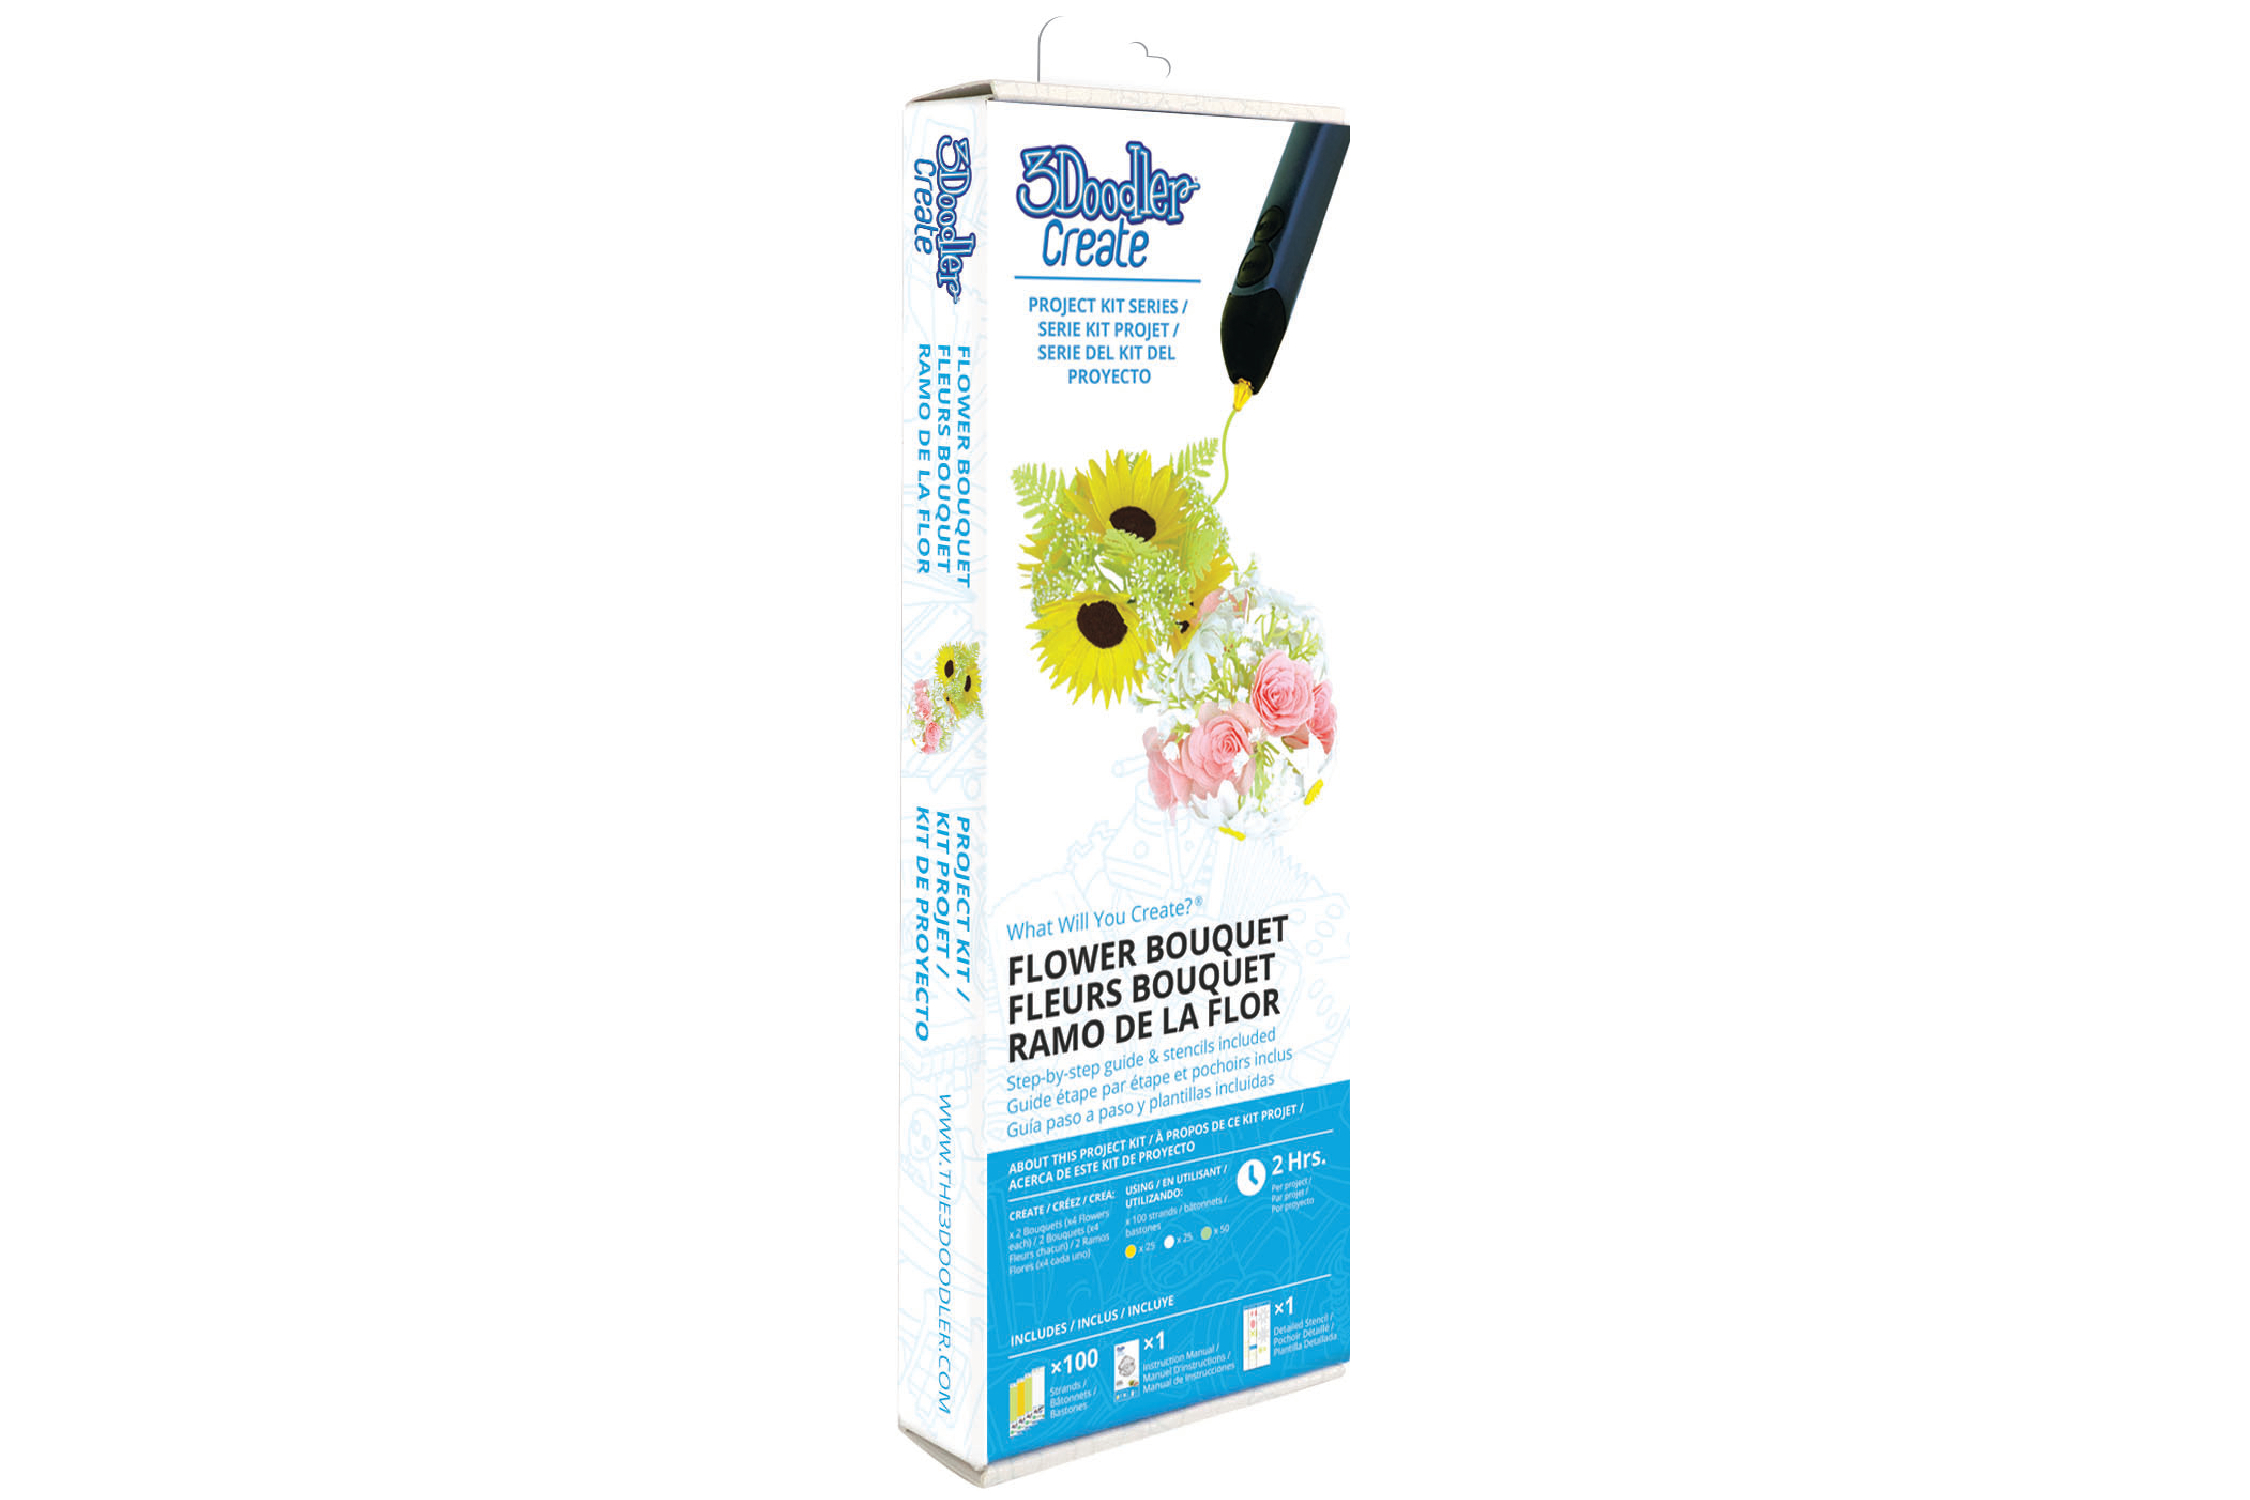 3Doodler Create Project Kit Flower Bouquet